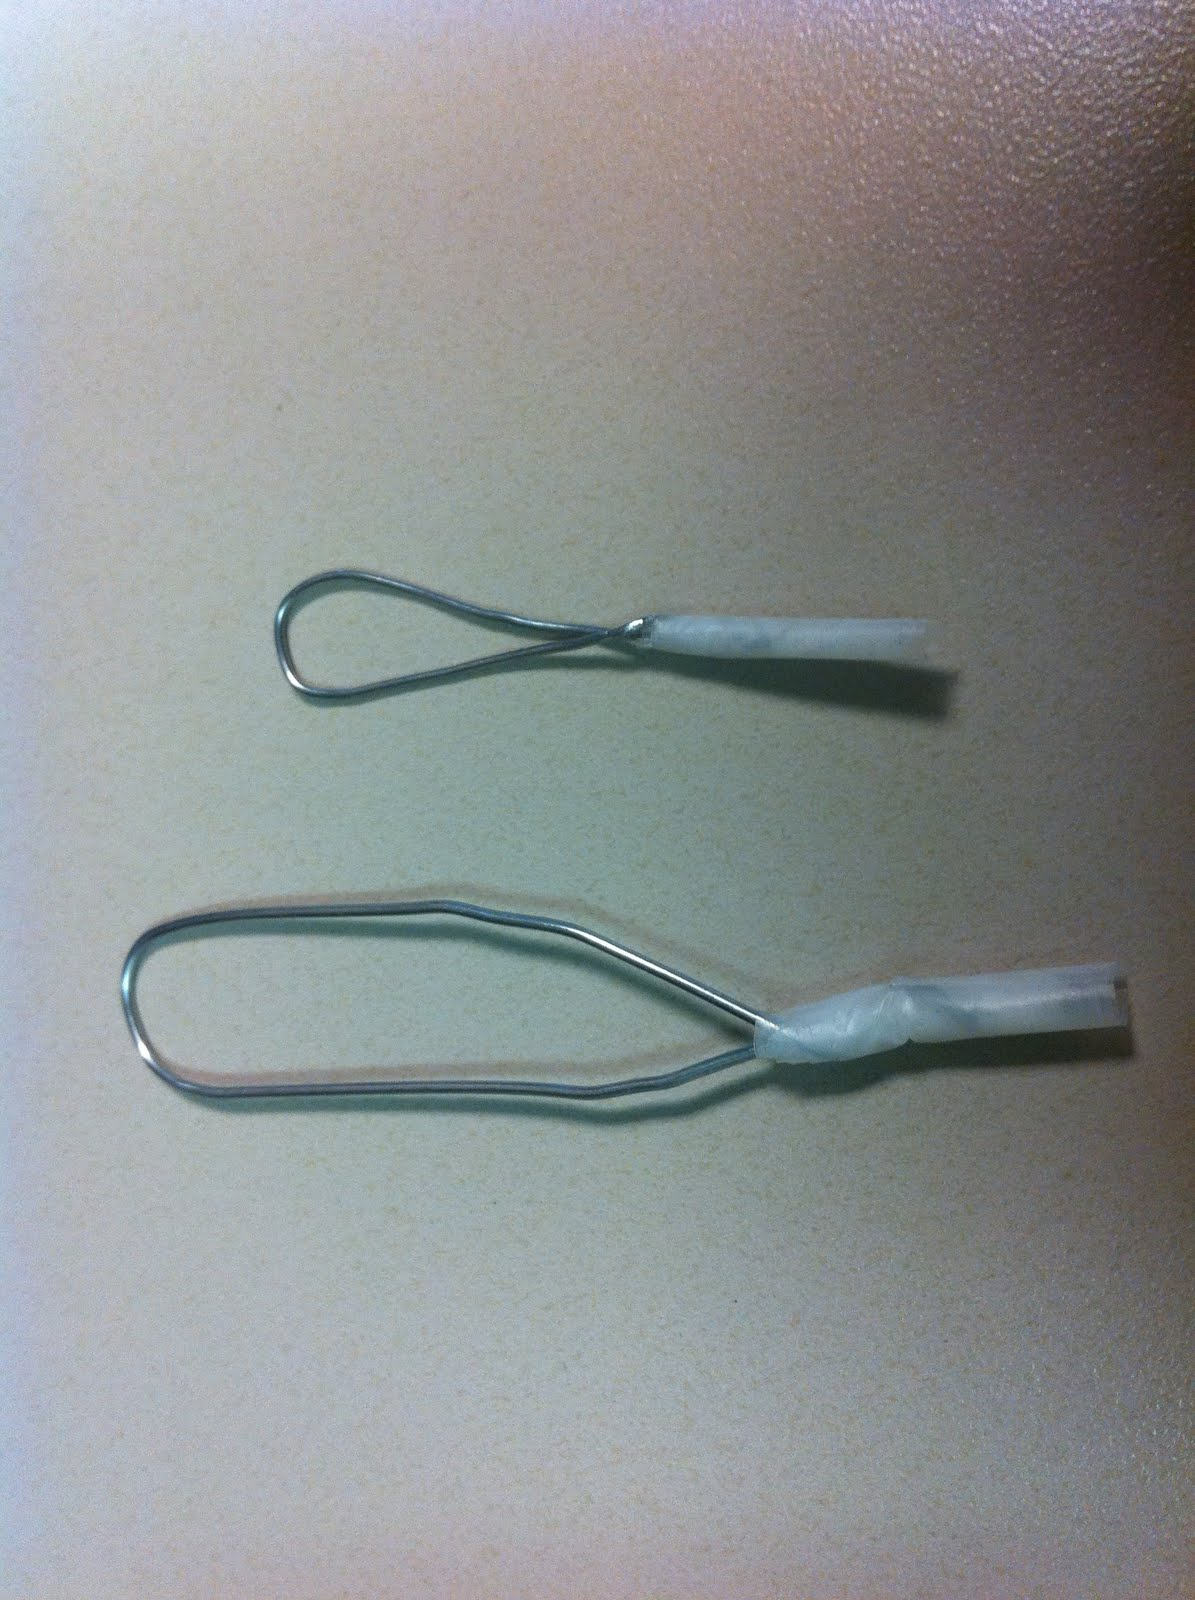 How to Make A Paper Clip Interlocking Tool